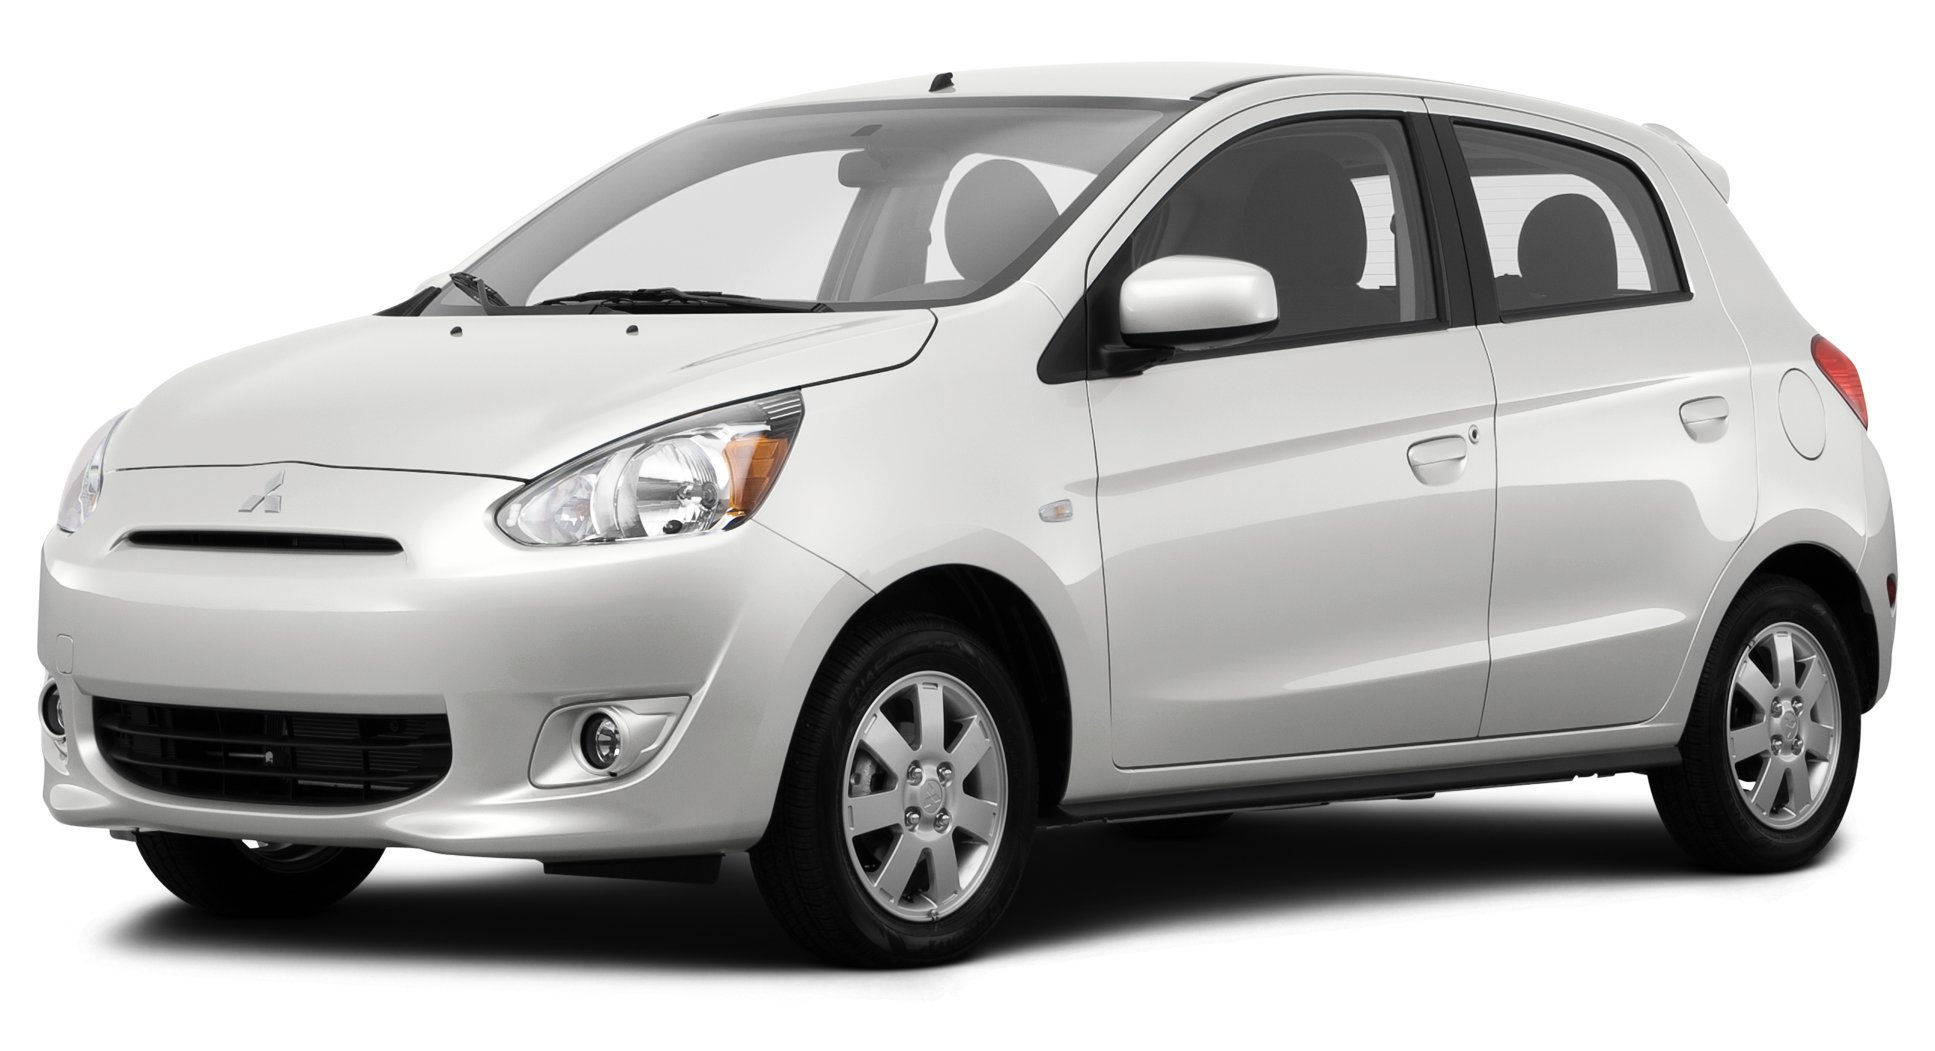 Amazon.com: 2014 Mitsubishi Mirage Reviews, Images, And